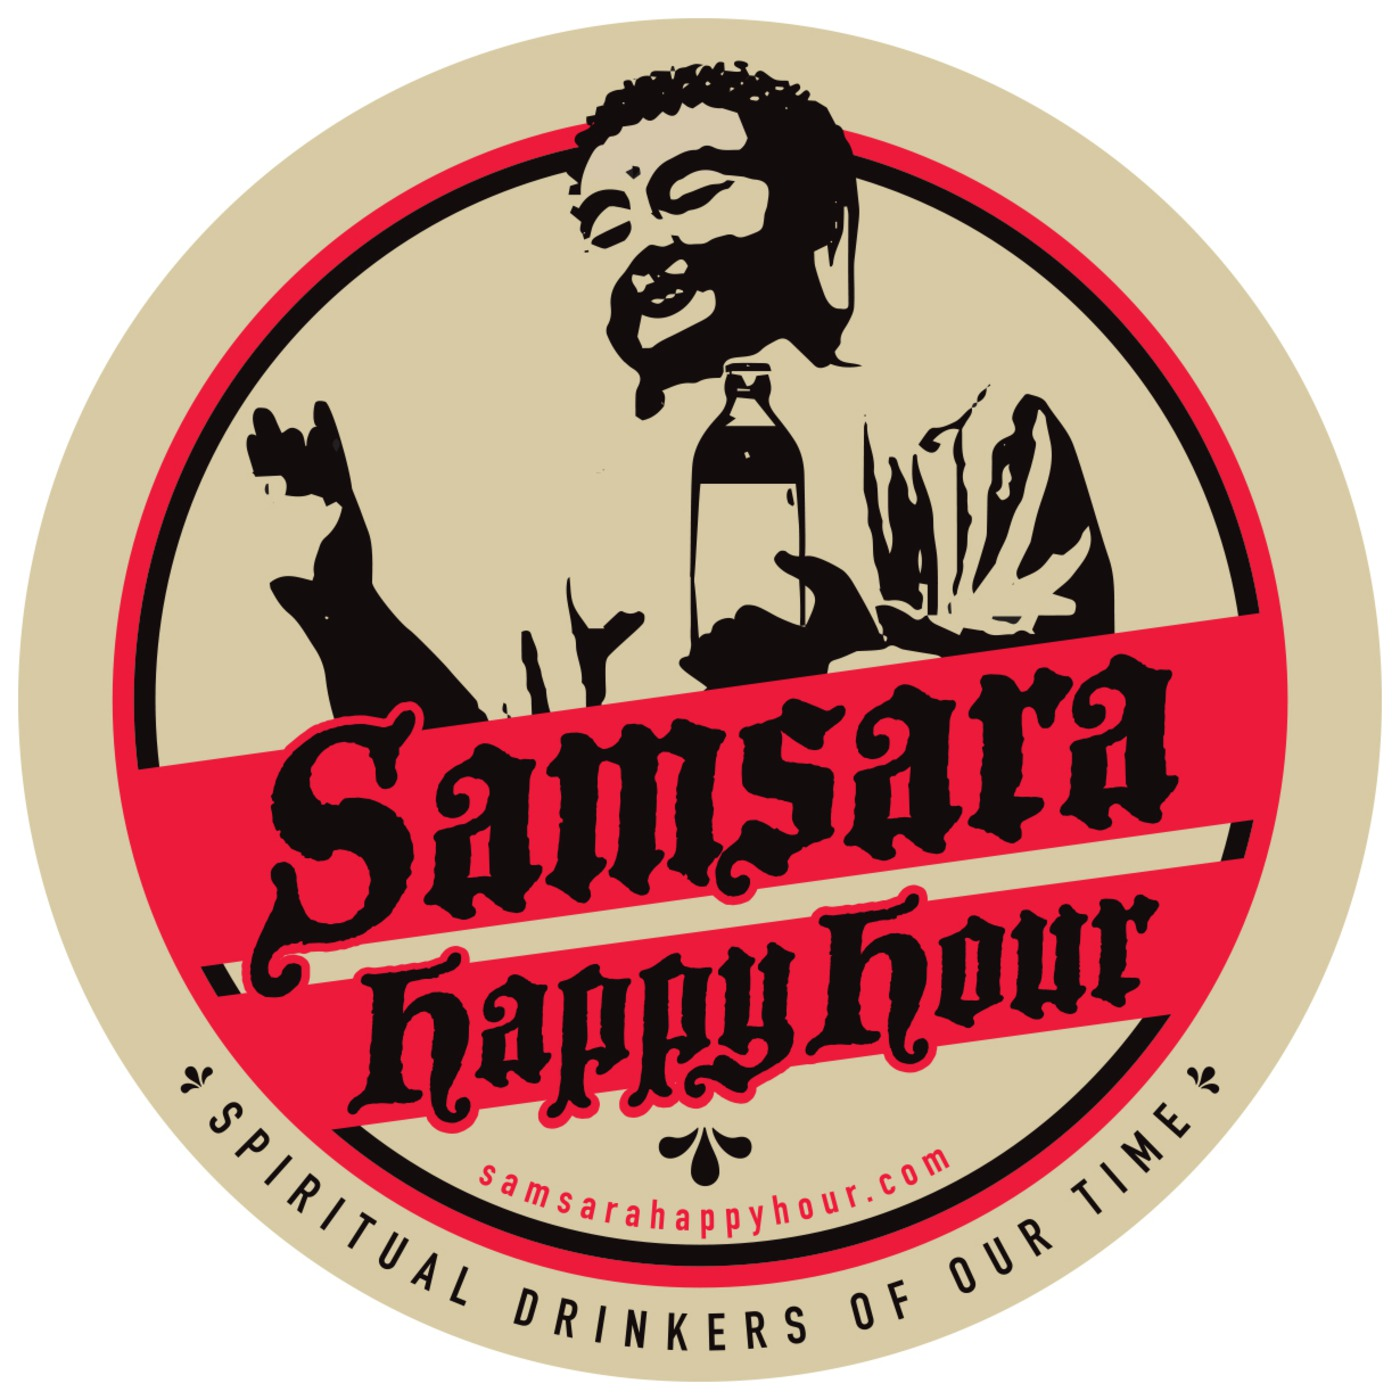 Samsara Happy Hour